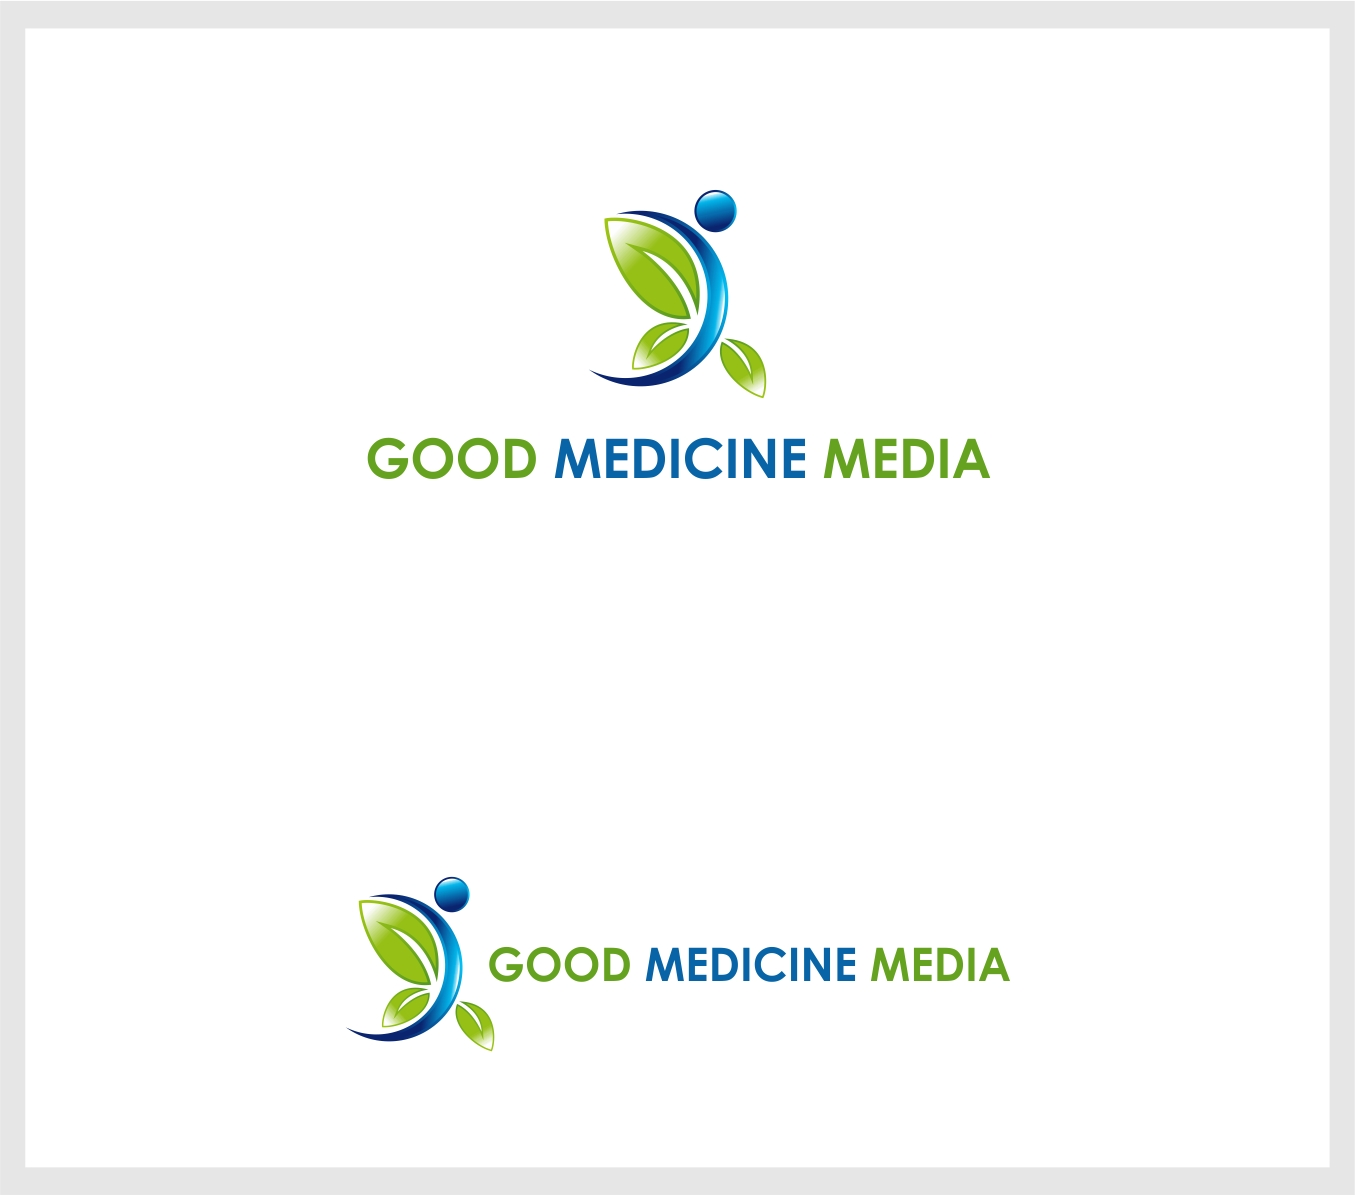 Logo Design by haidu - Entry No. 208 in the Logo Design Contest Good Medicine Media Logo Design.